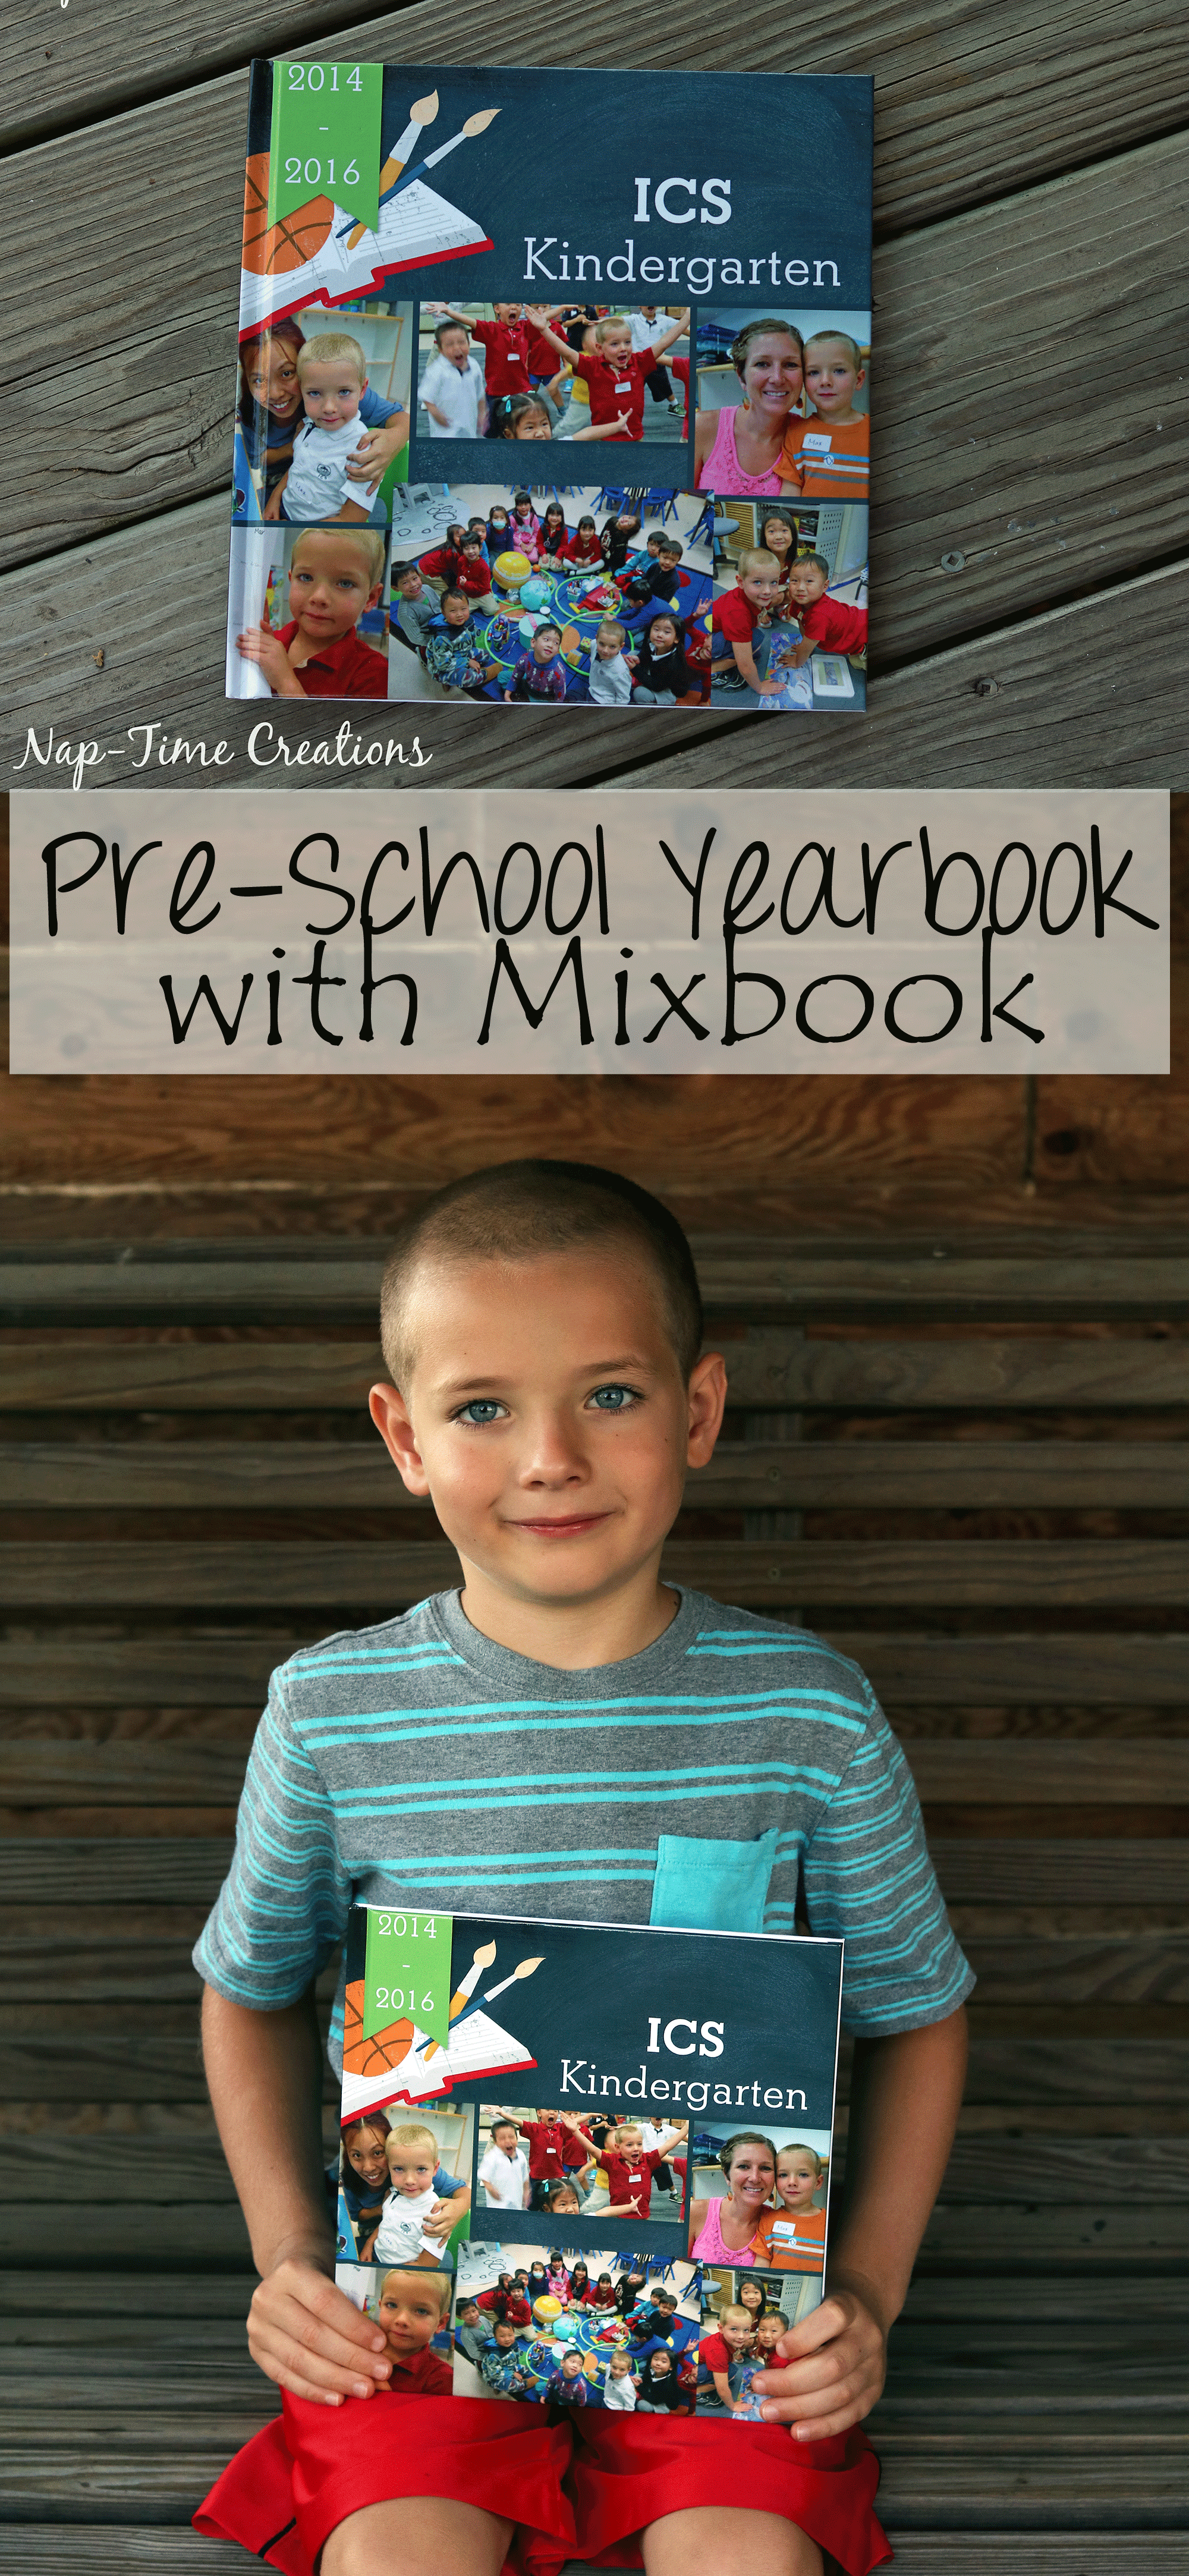 preschool-yearbook-with-Mixbooks-preserving-school-memories-from-Nap-Time-Creations